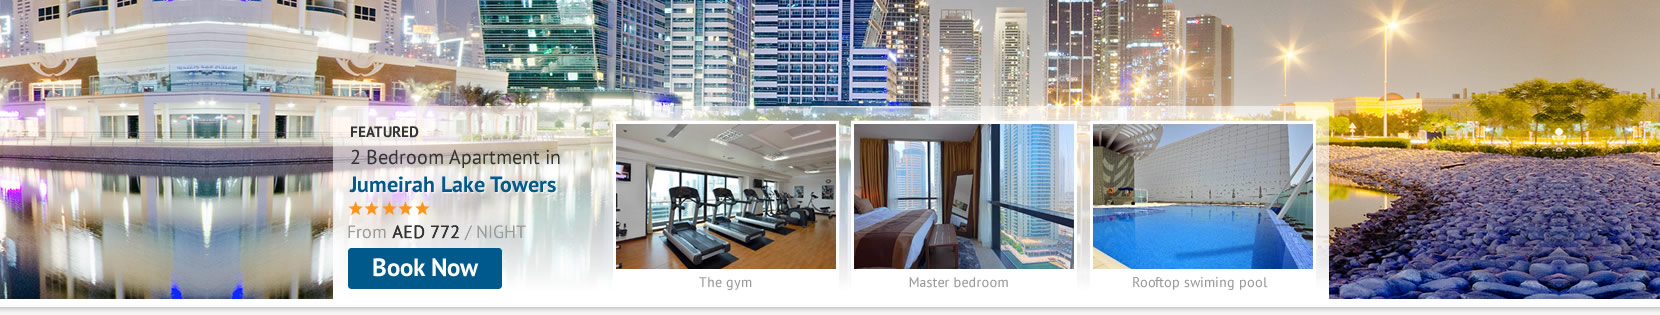 Stay Self-Catering at Jumeirah Lake Towers Holiday Apartments